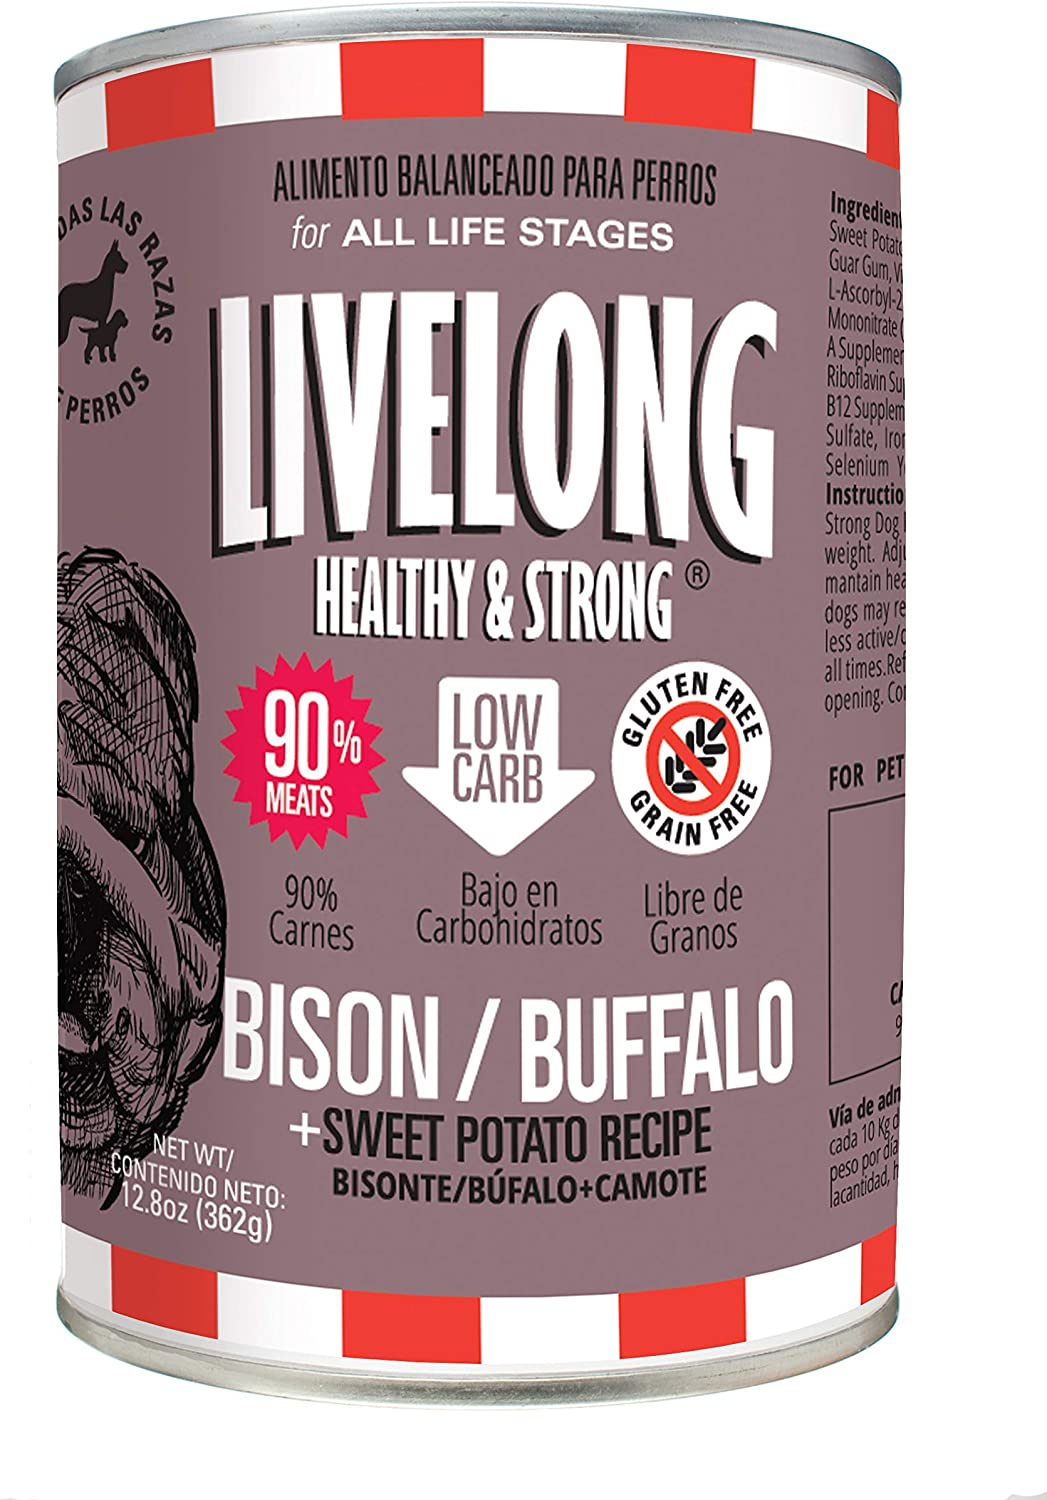 LIVELONG HEALTHY & STRONG Canned Dog Food - 12.8 oz Wet Dog Food with 90% Meat – Premium Dog Food Can with Organic Vegetables – No Grain Recipe – Pack of 12 Dog Food Cans (Bison / Buffalo)